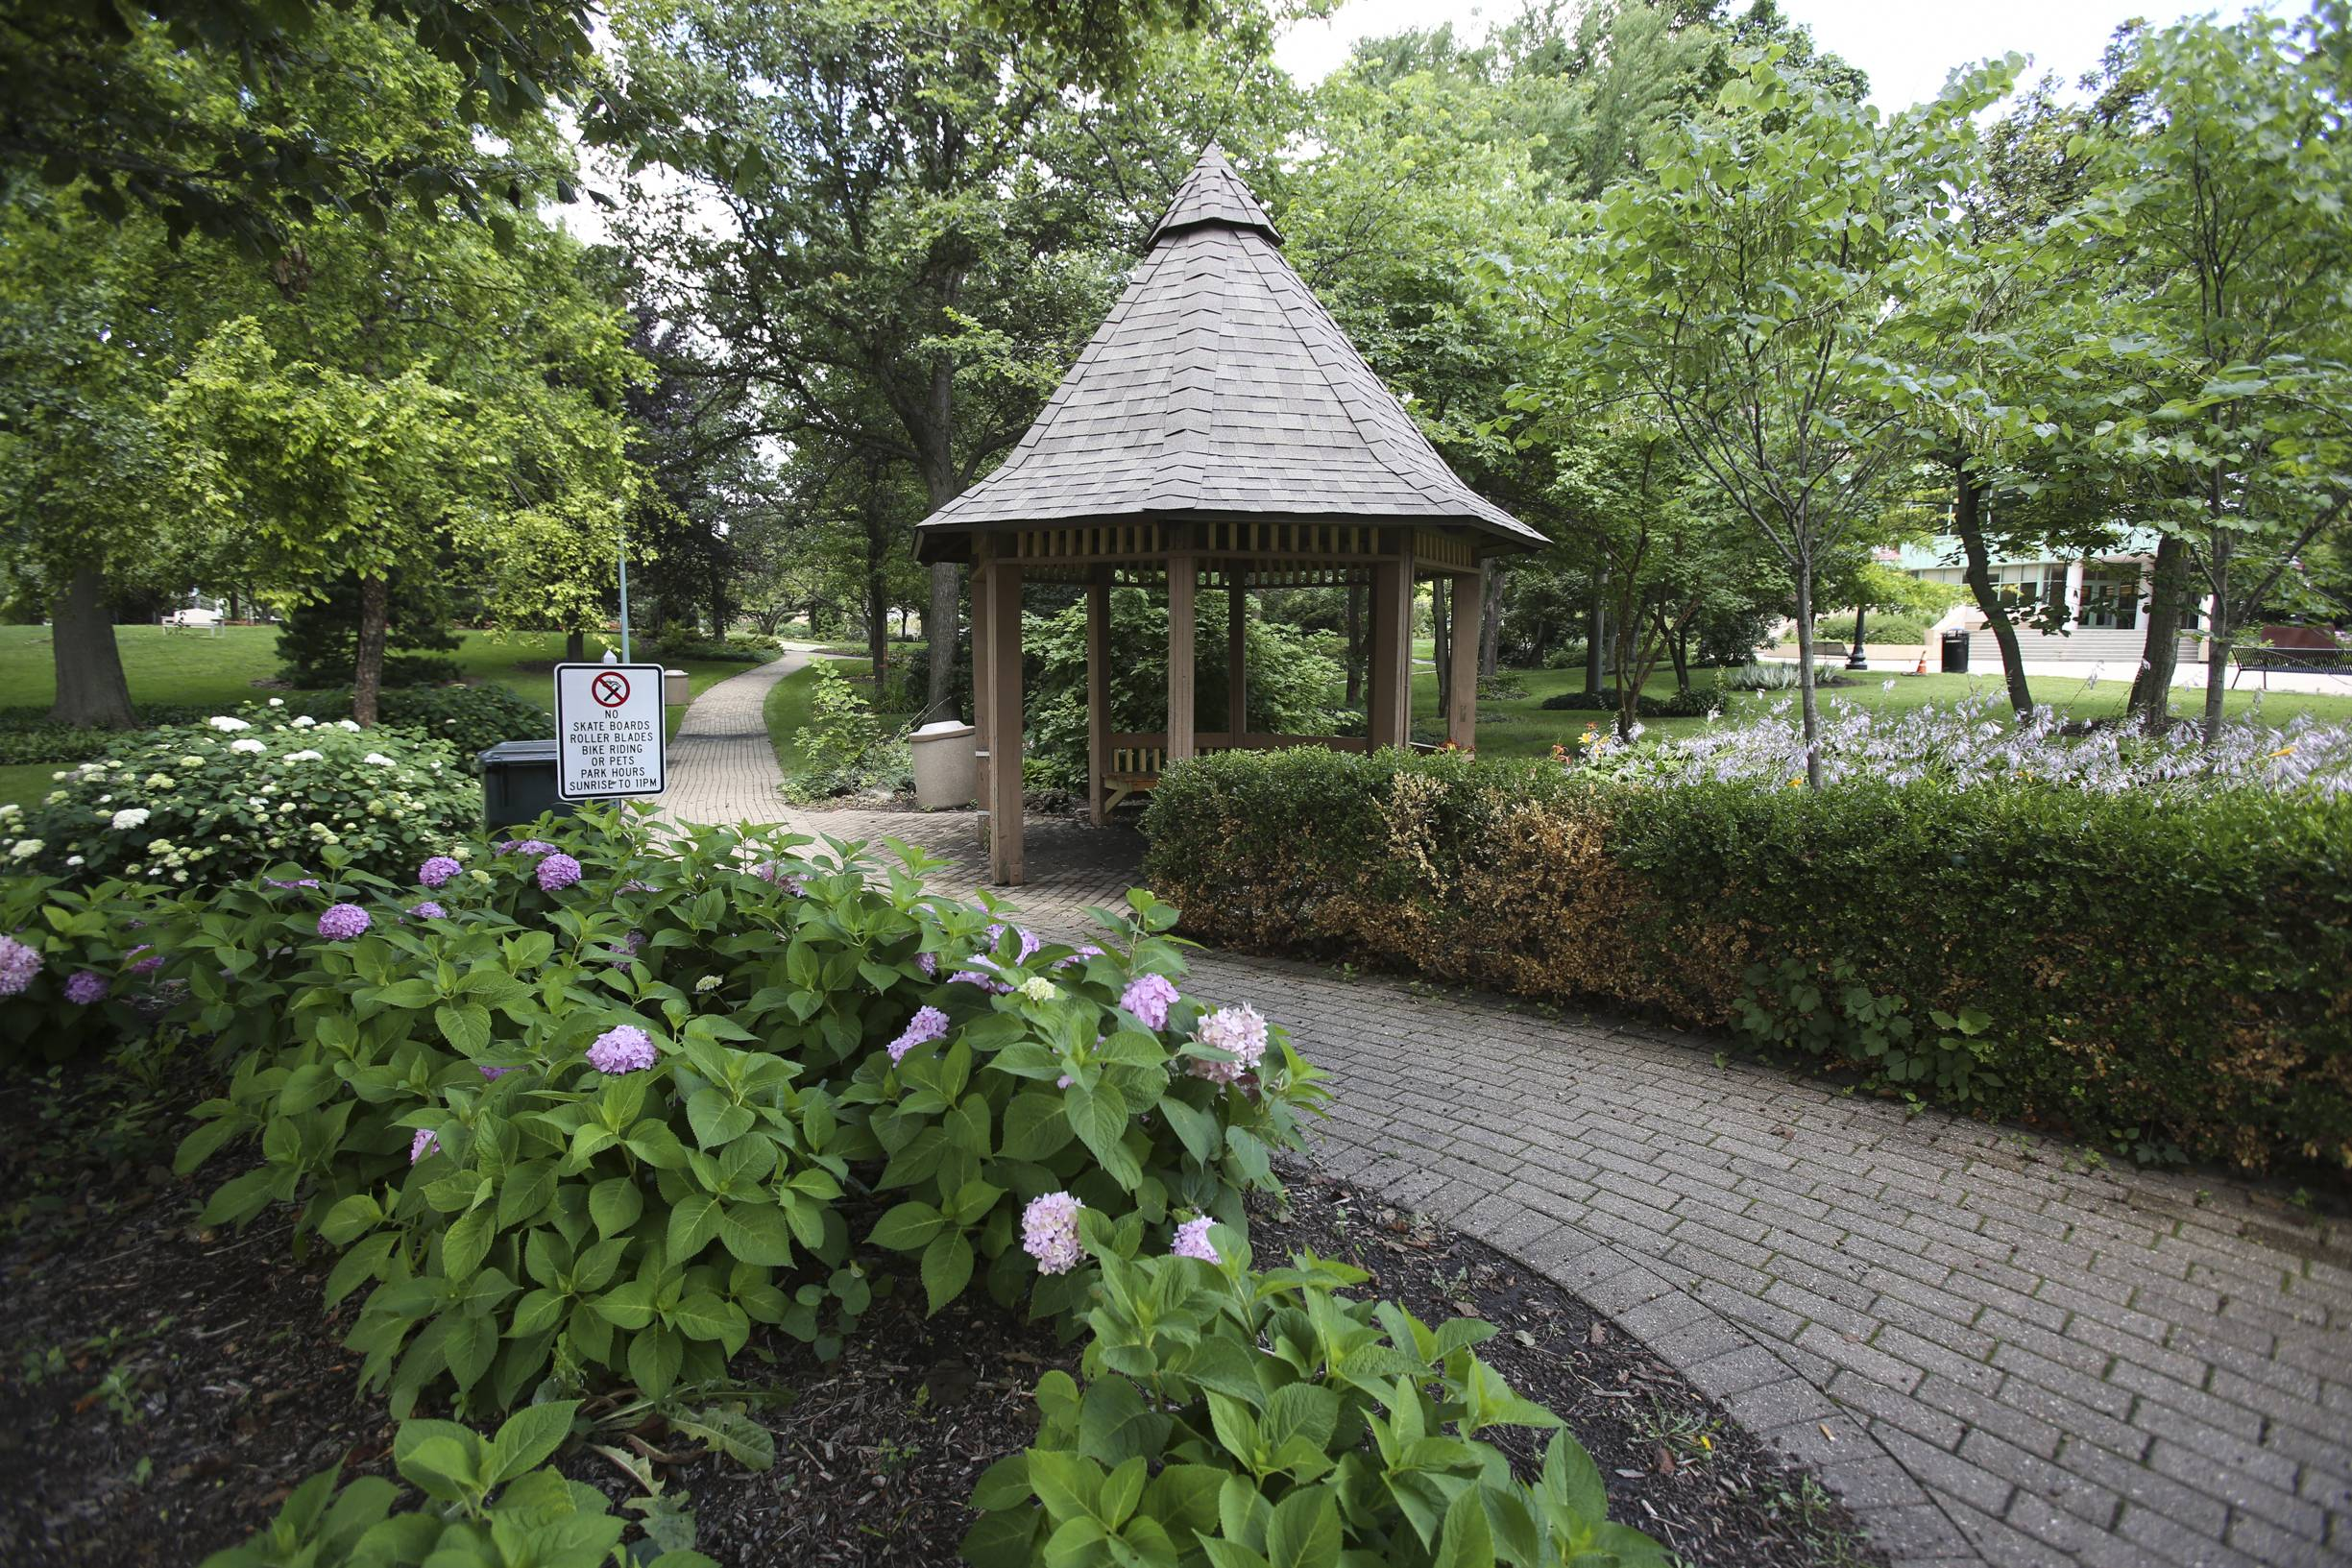 A gazebo is one of the few structures in Adams Park, a quiet getaway in downtown Wheaton.